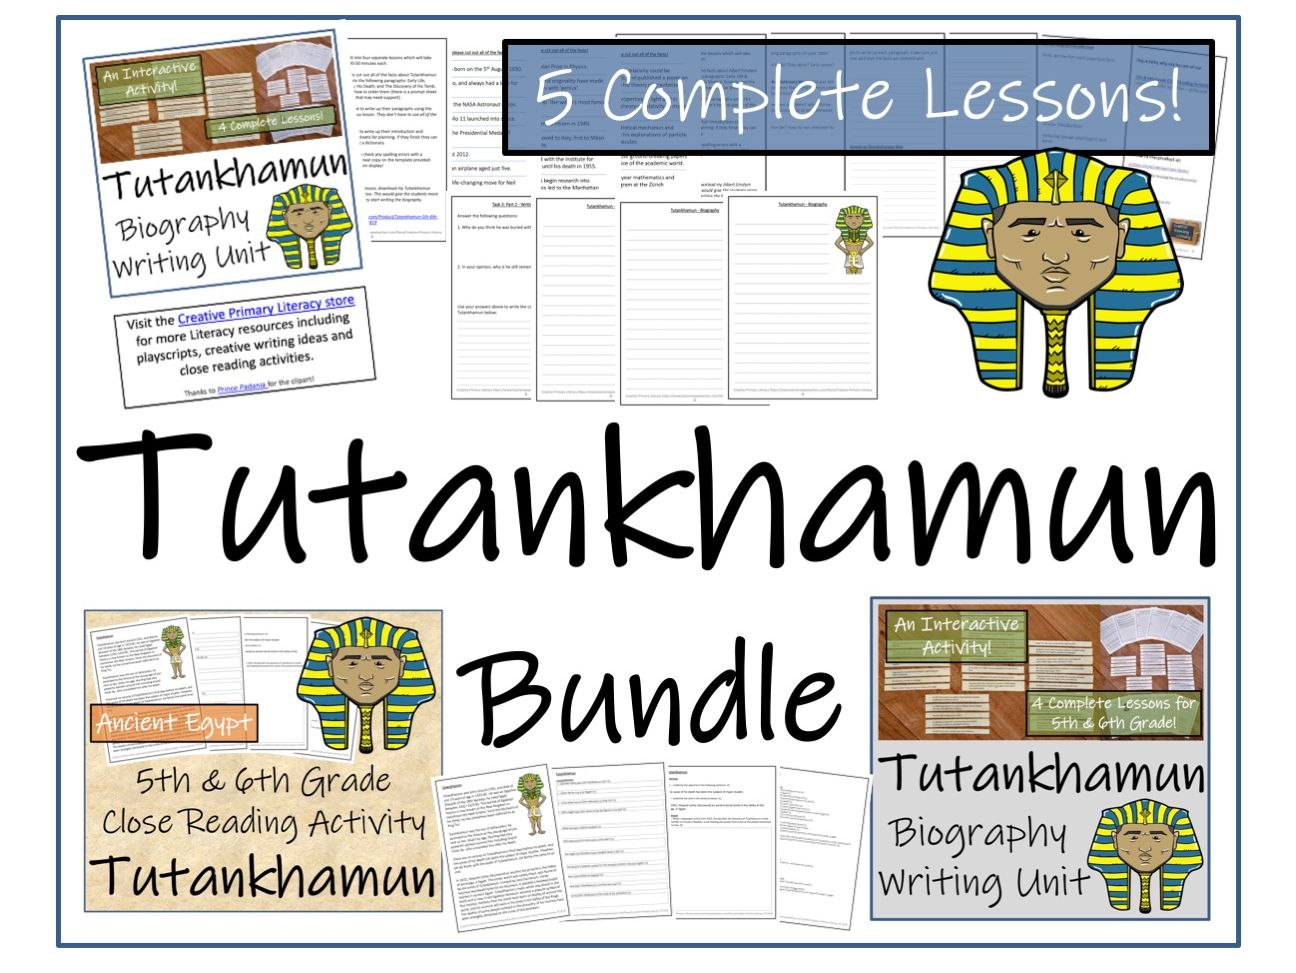 UKS2 History - Bundle of Activities about Tutankhamun